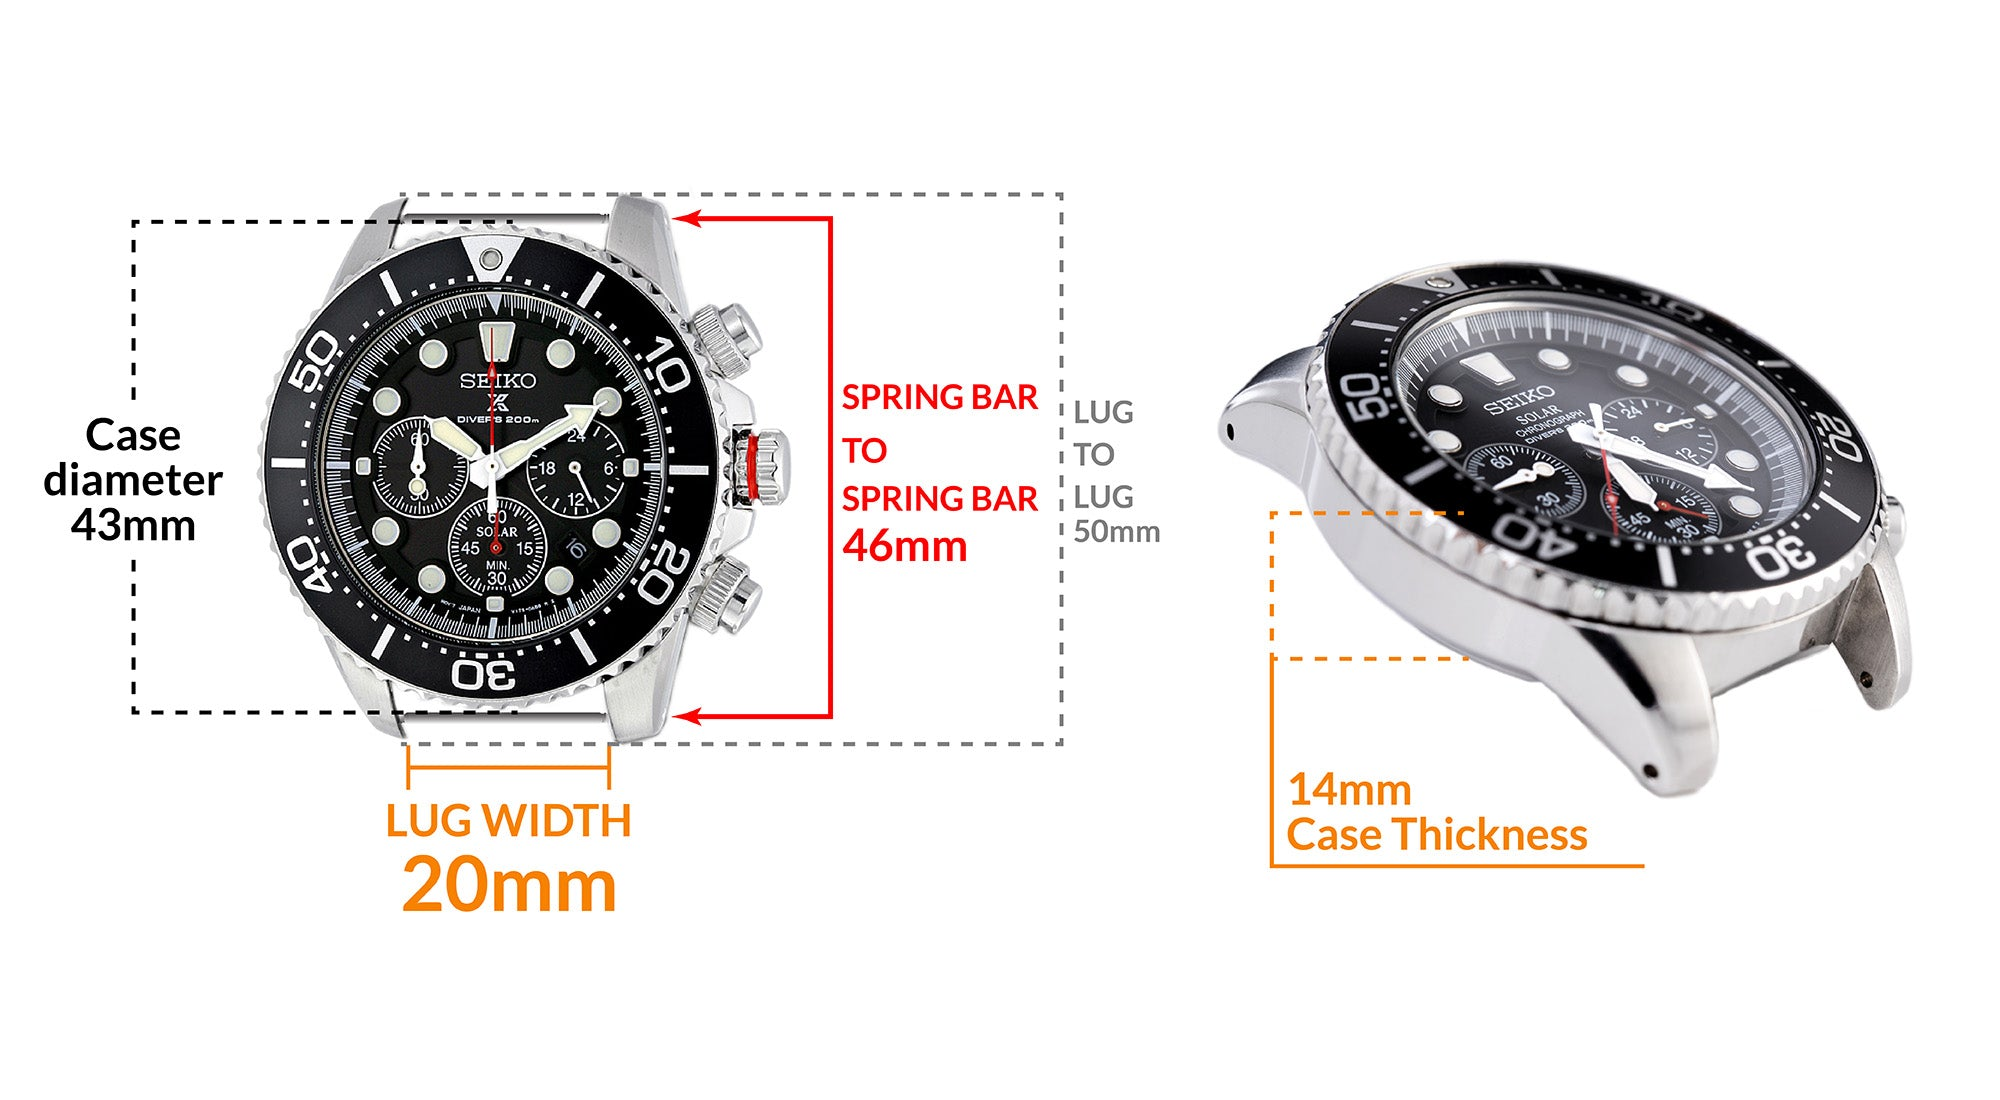 Seiko Chrono Solar watch SSC015P1- Details Seiko watch size, Lug width and case dimensions